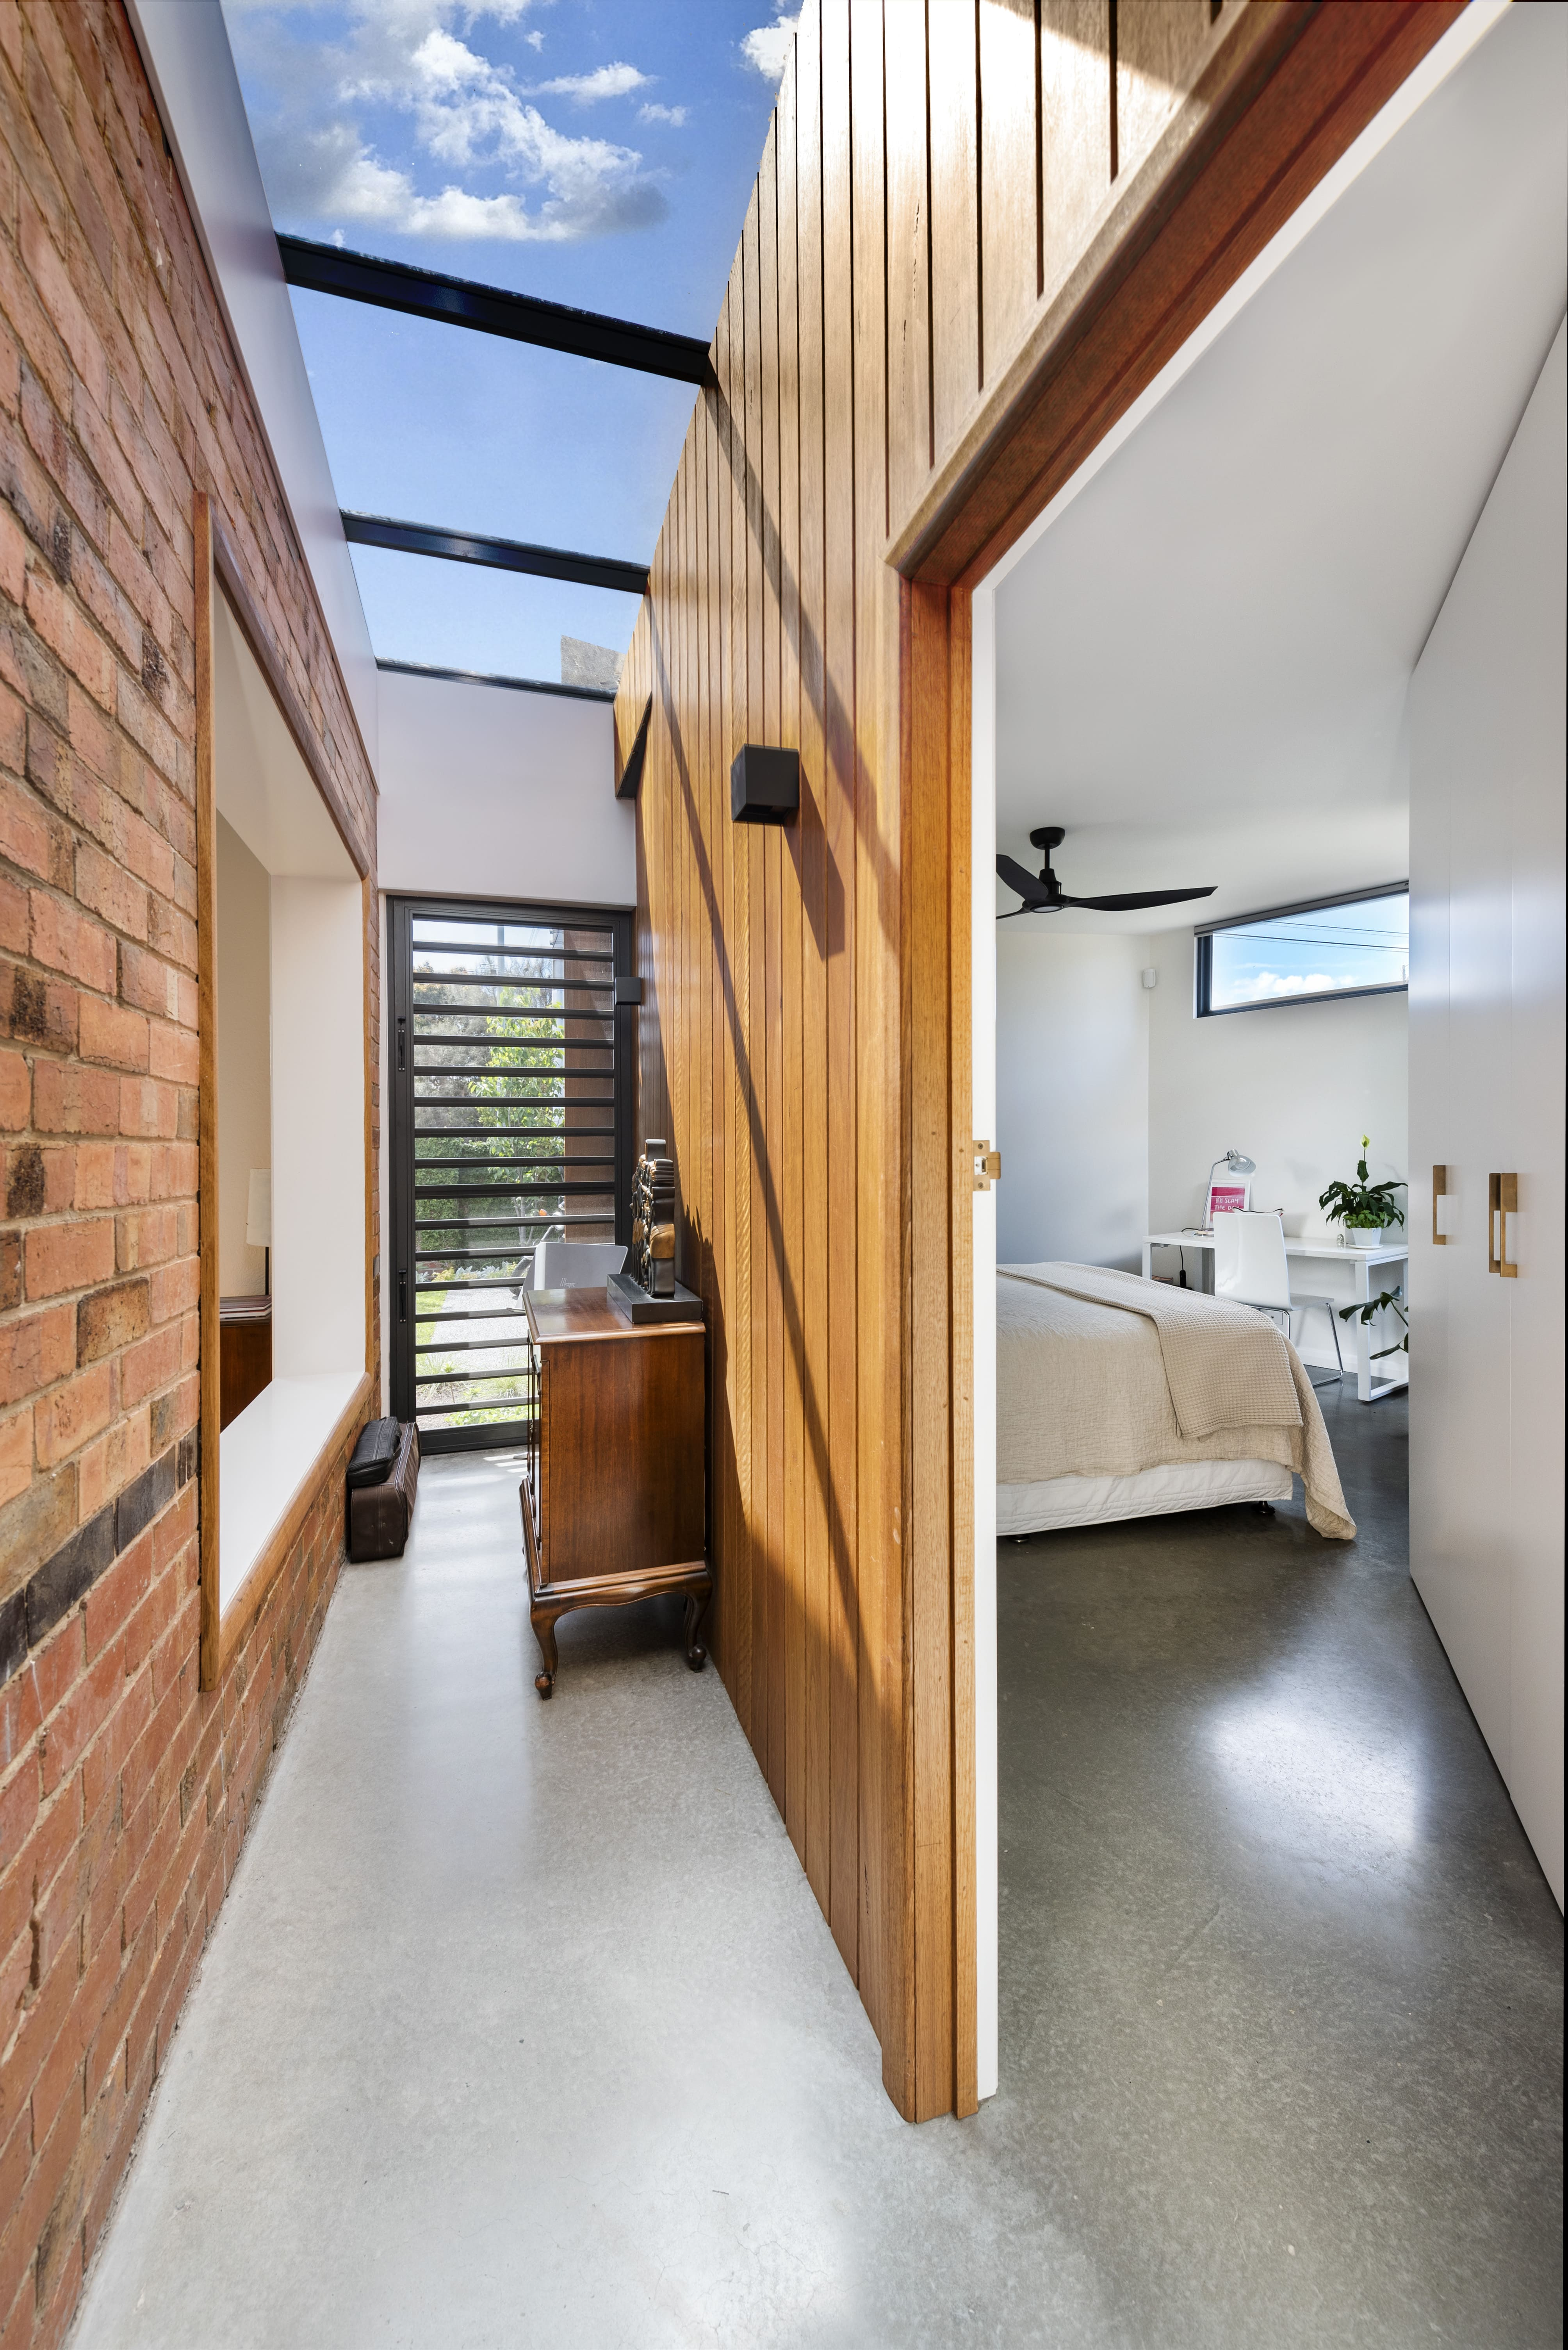 Bathroom And Laundry, We Were Left With An 'l' Shaped Form Of 2 Bedrooms, And Entry And 2 Living Spaces.